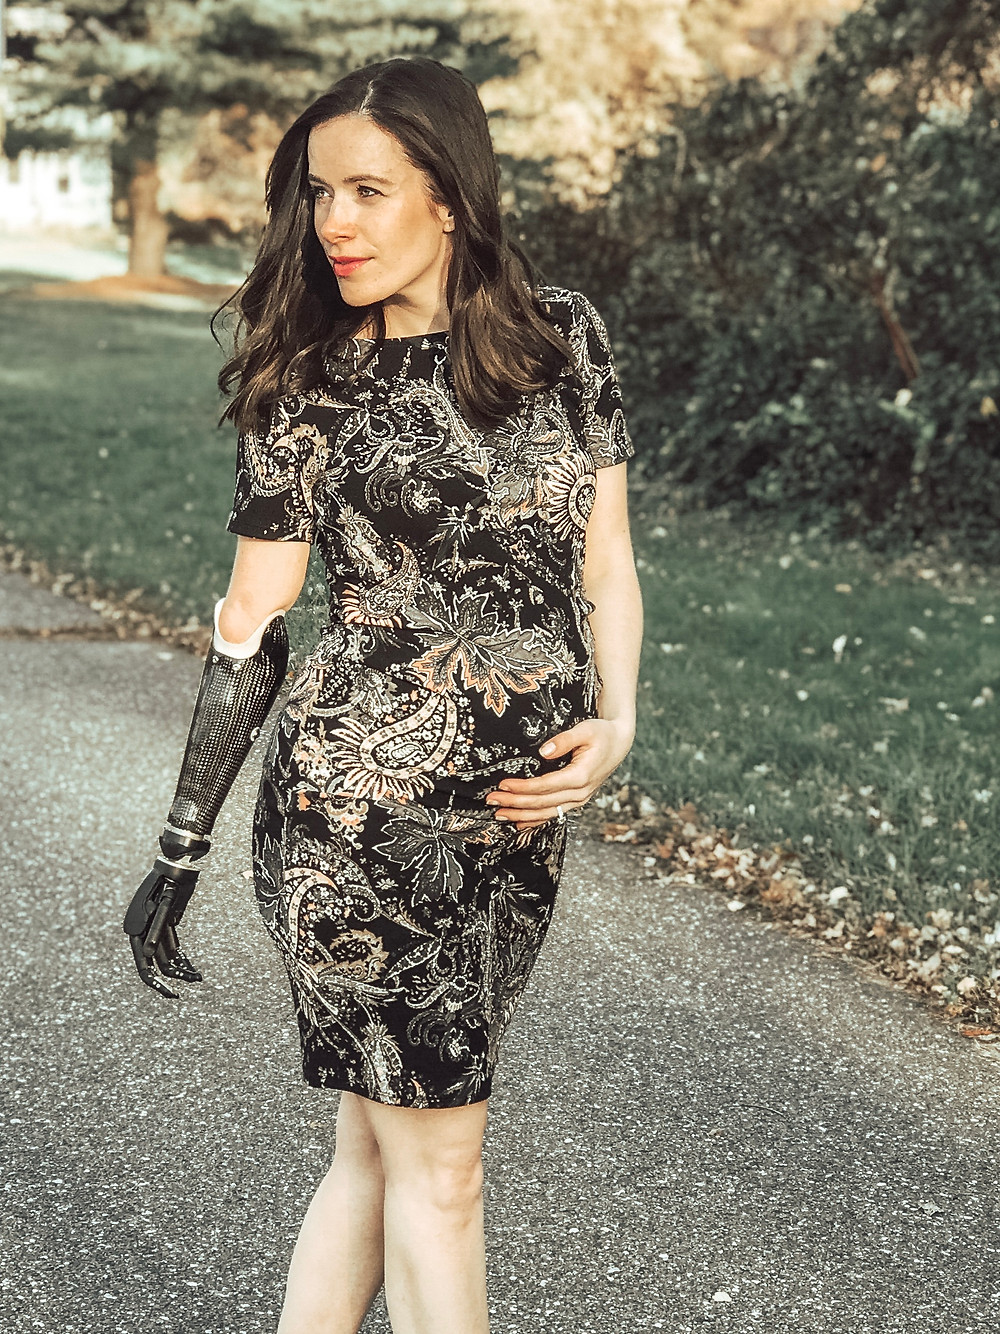 Rebekah Marine wearing fitted Maternity Dress from PinkBlush